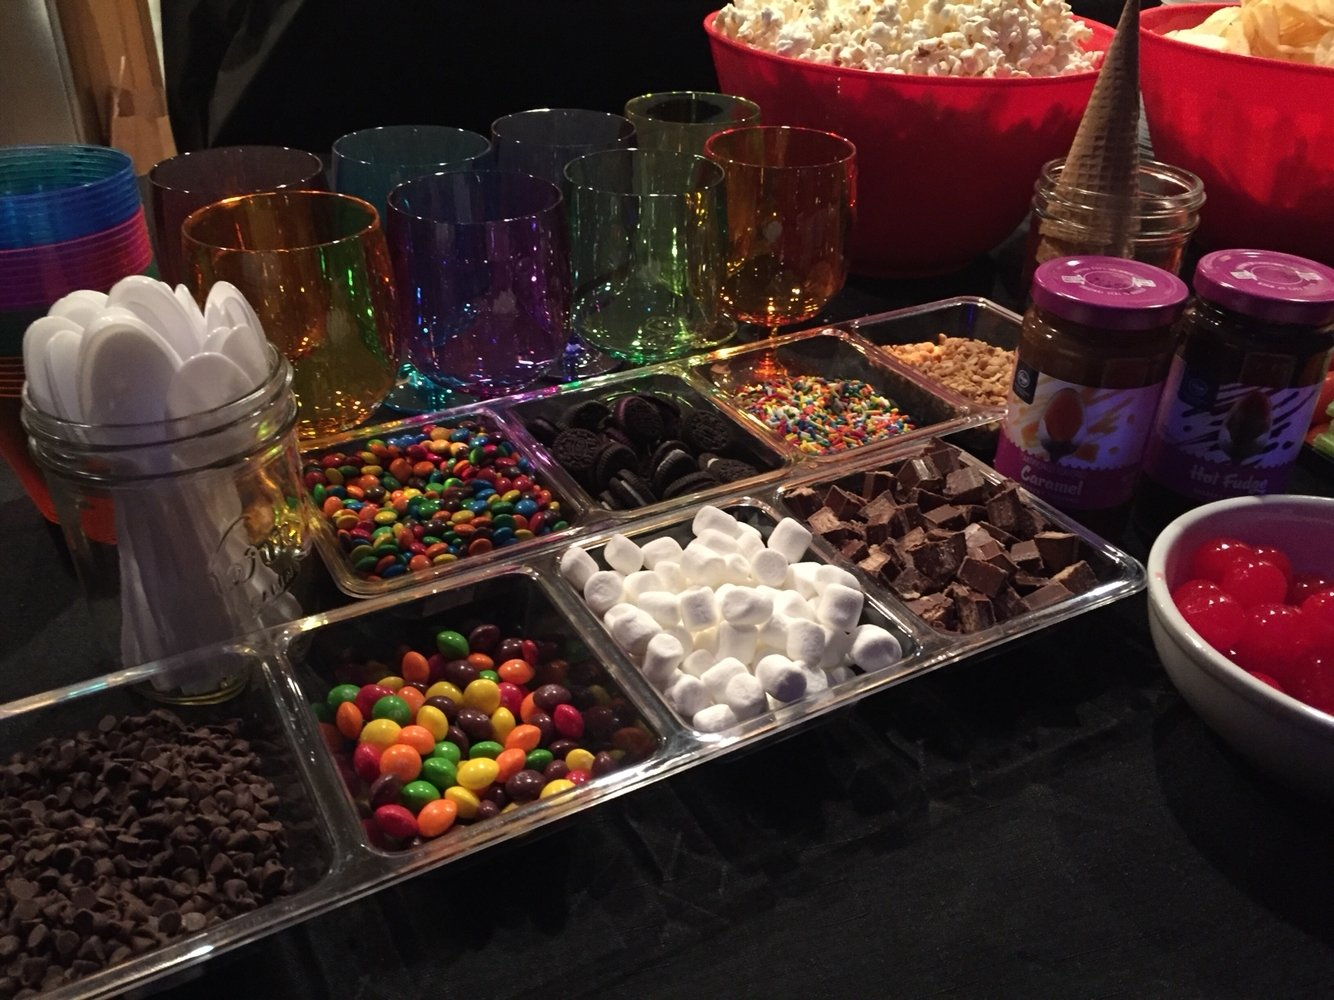 10 Perfect Good 16Th Birthday Party Ideas For Guys teen boy bday party glow in the dark neon blacklight sundae bar 3